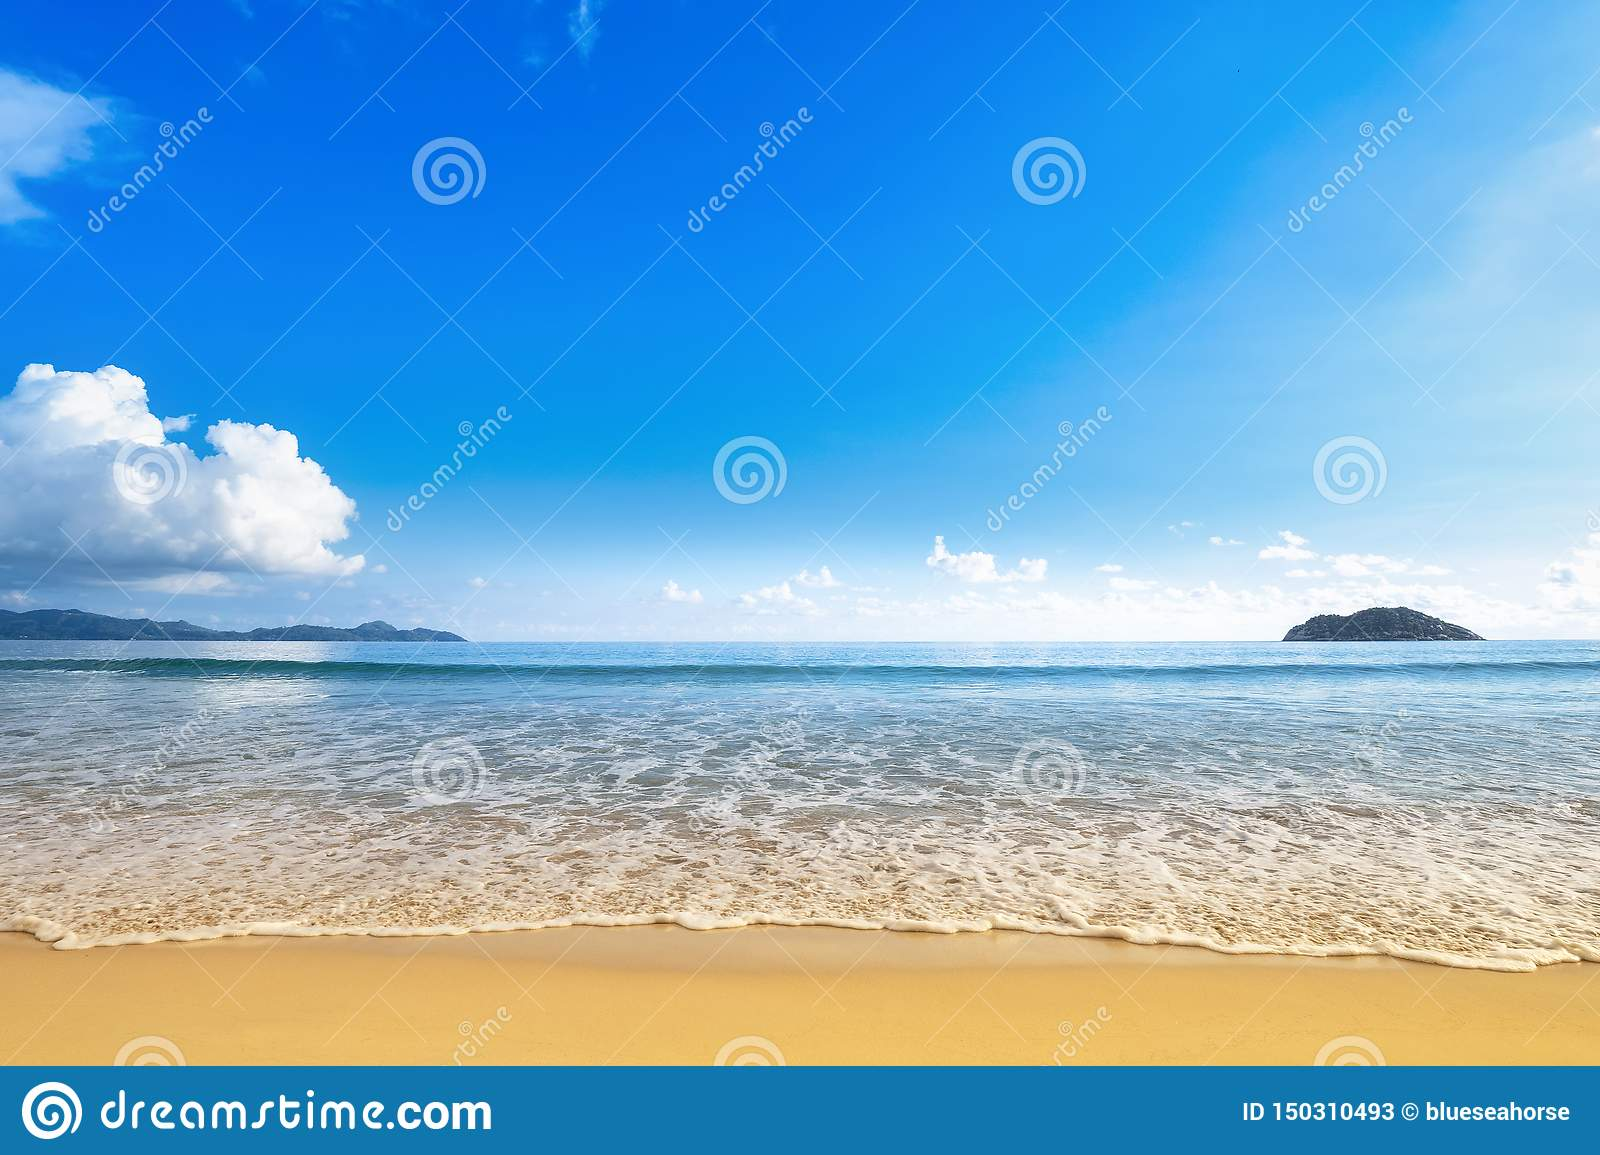 Wide beach with golden sand shore and blue sky